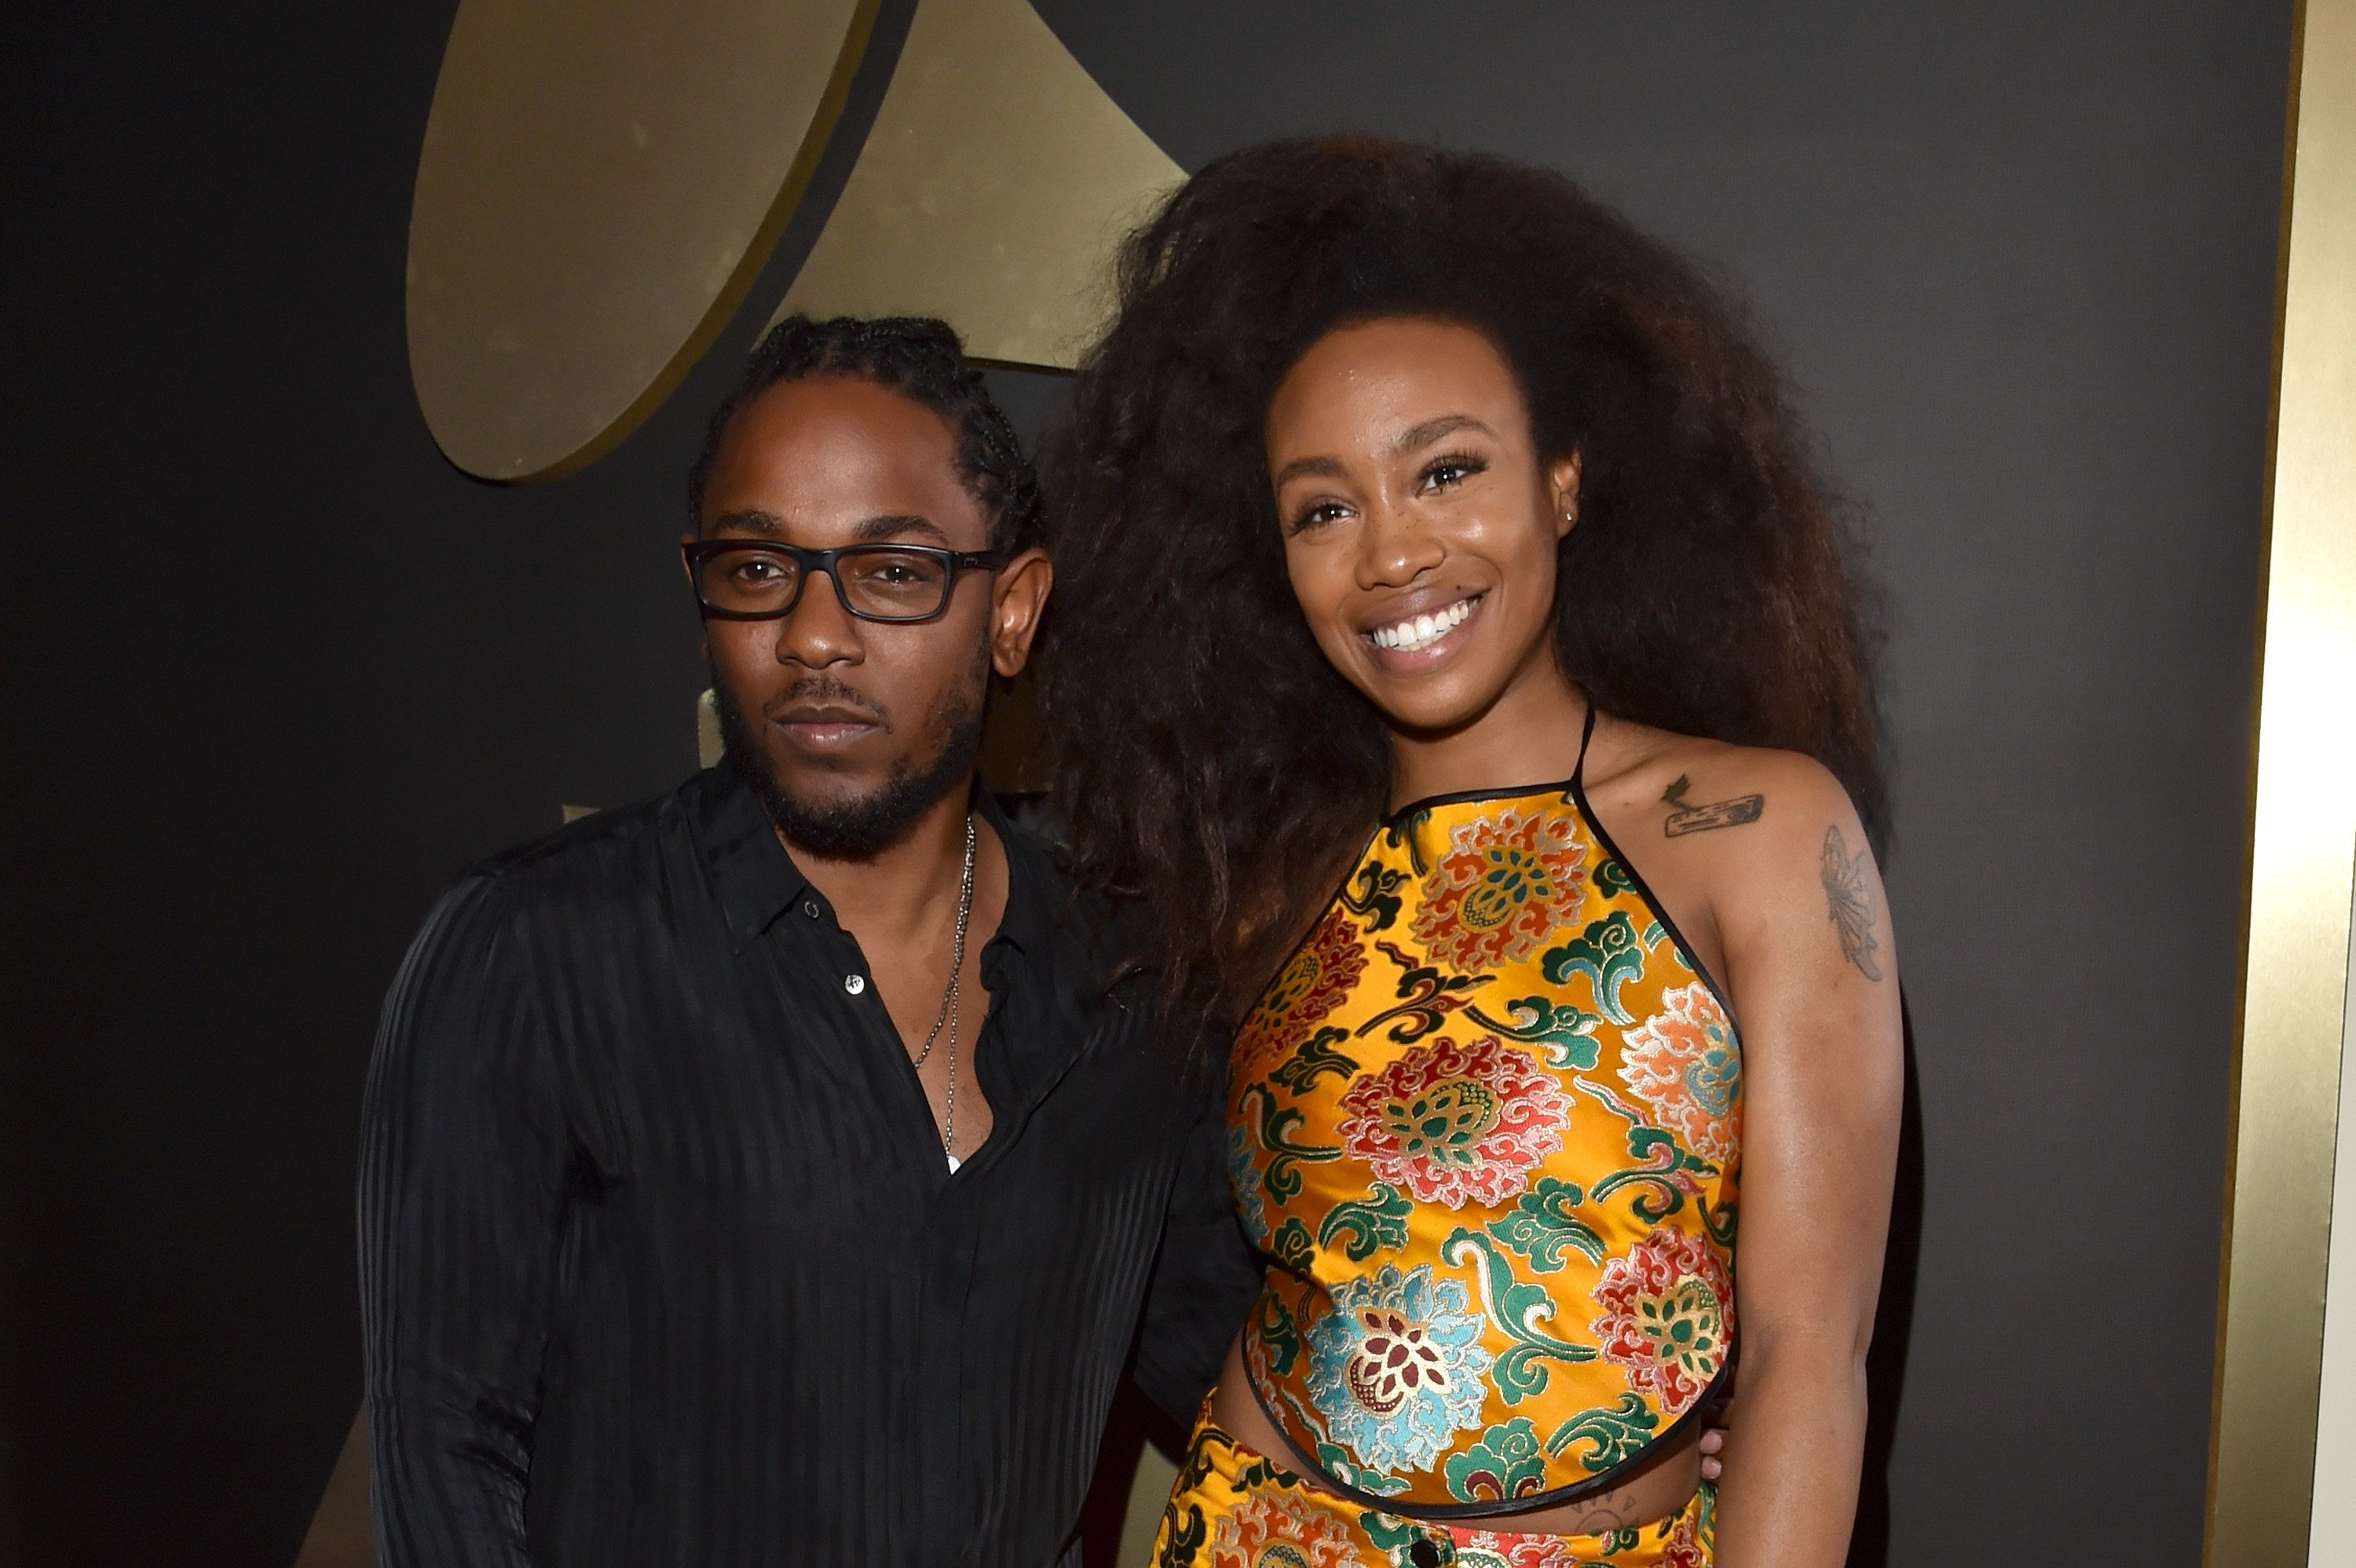 LOS ANGELES, CA - FEBRUARY 15:  Recording artists Kendrick Lamar and SZA attend The 58th GRAMMY Awards at Staples Center on February 15, 2016 in Los Angeles, California.  (Photo by Lester Cohen/WireImage)